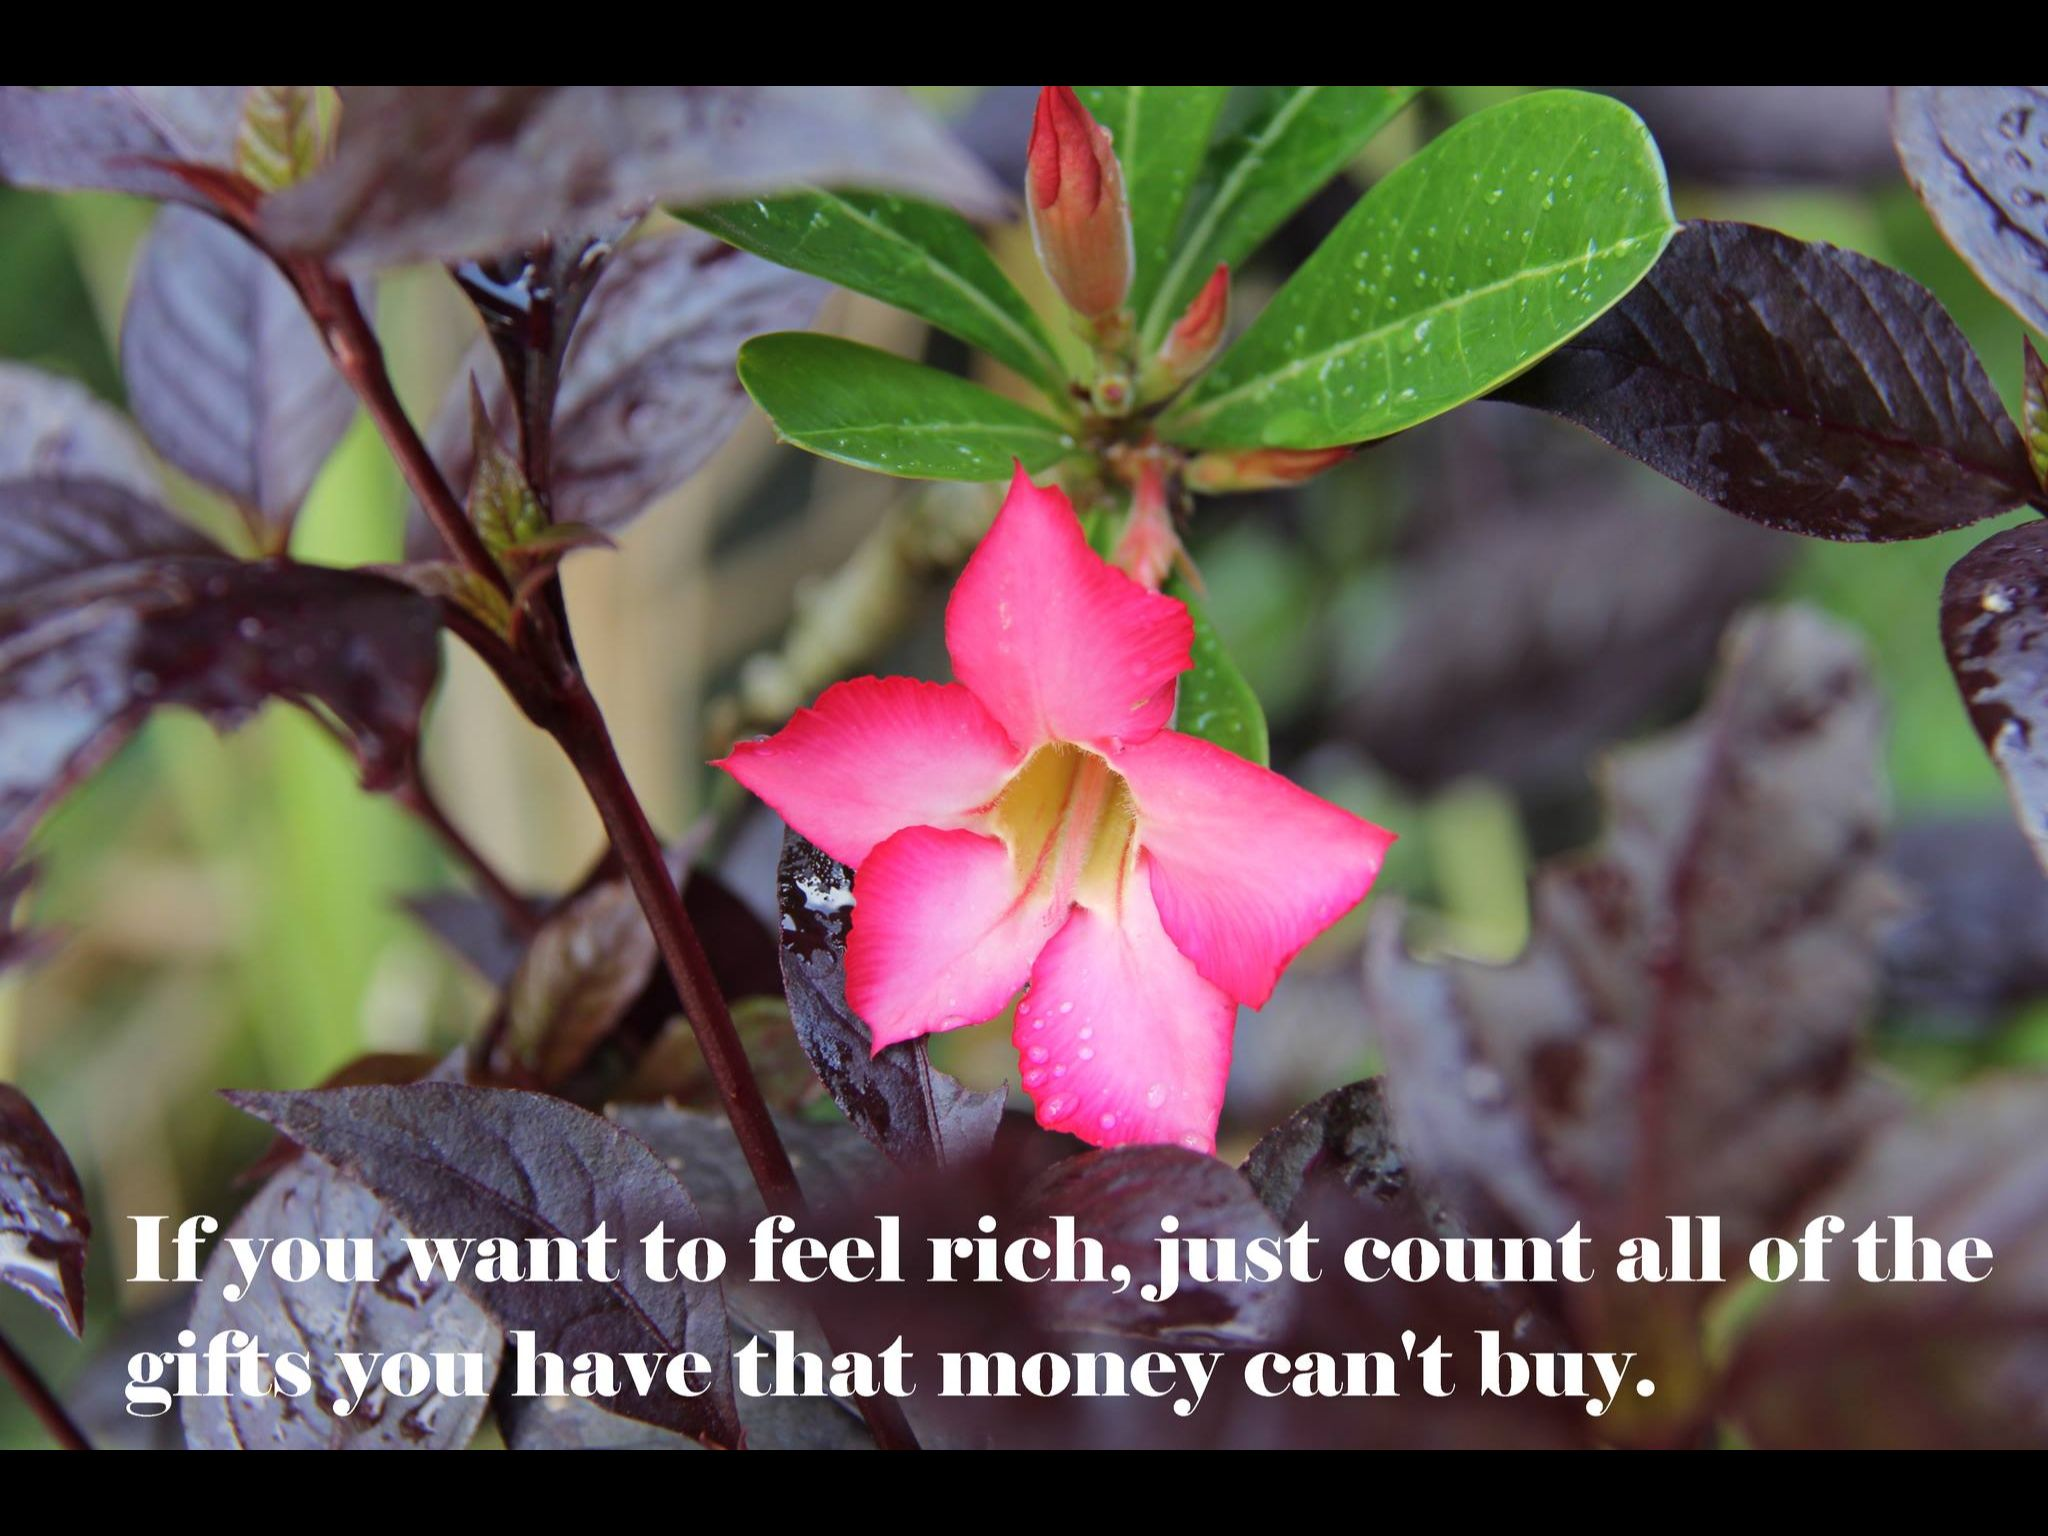 If you want to feel rich, just count all of the gifts you have that money can't buy.